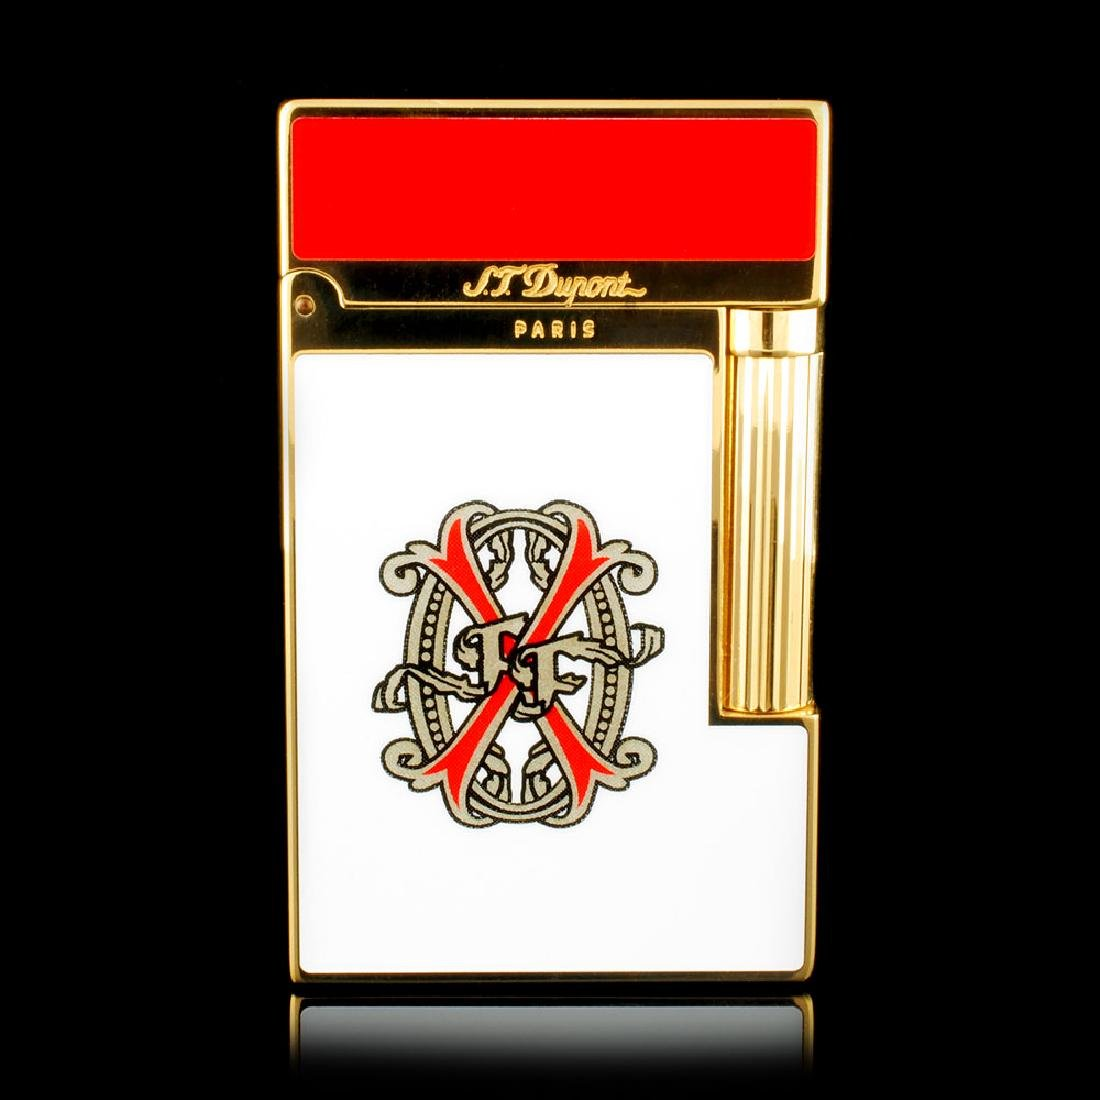 St. Dupont Opus X 2006 Lighter